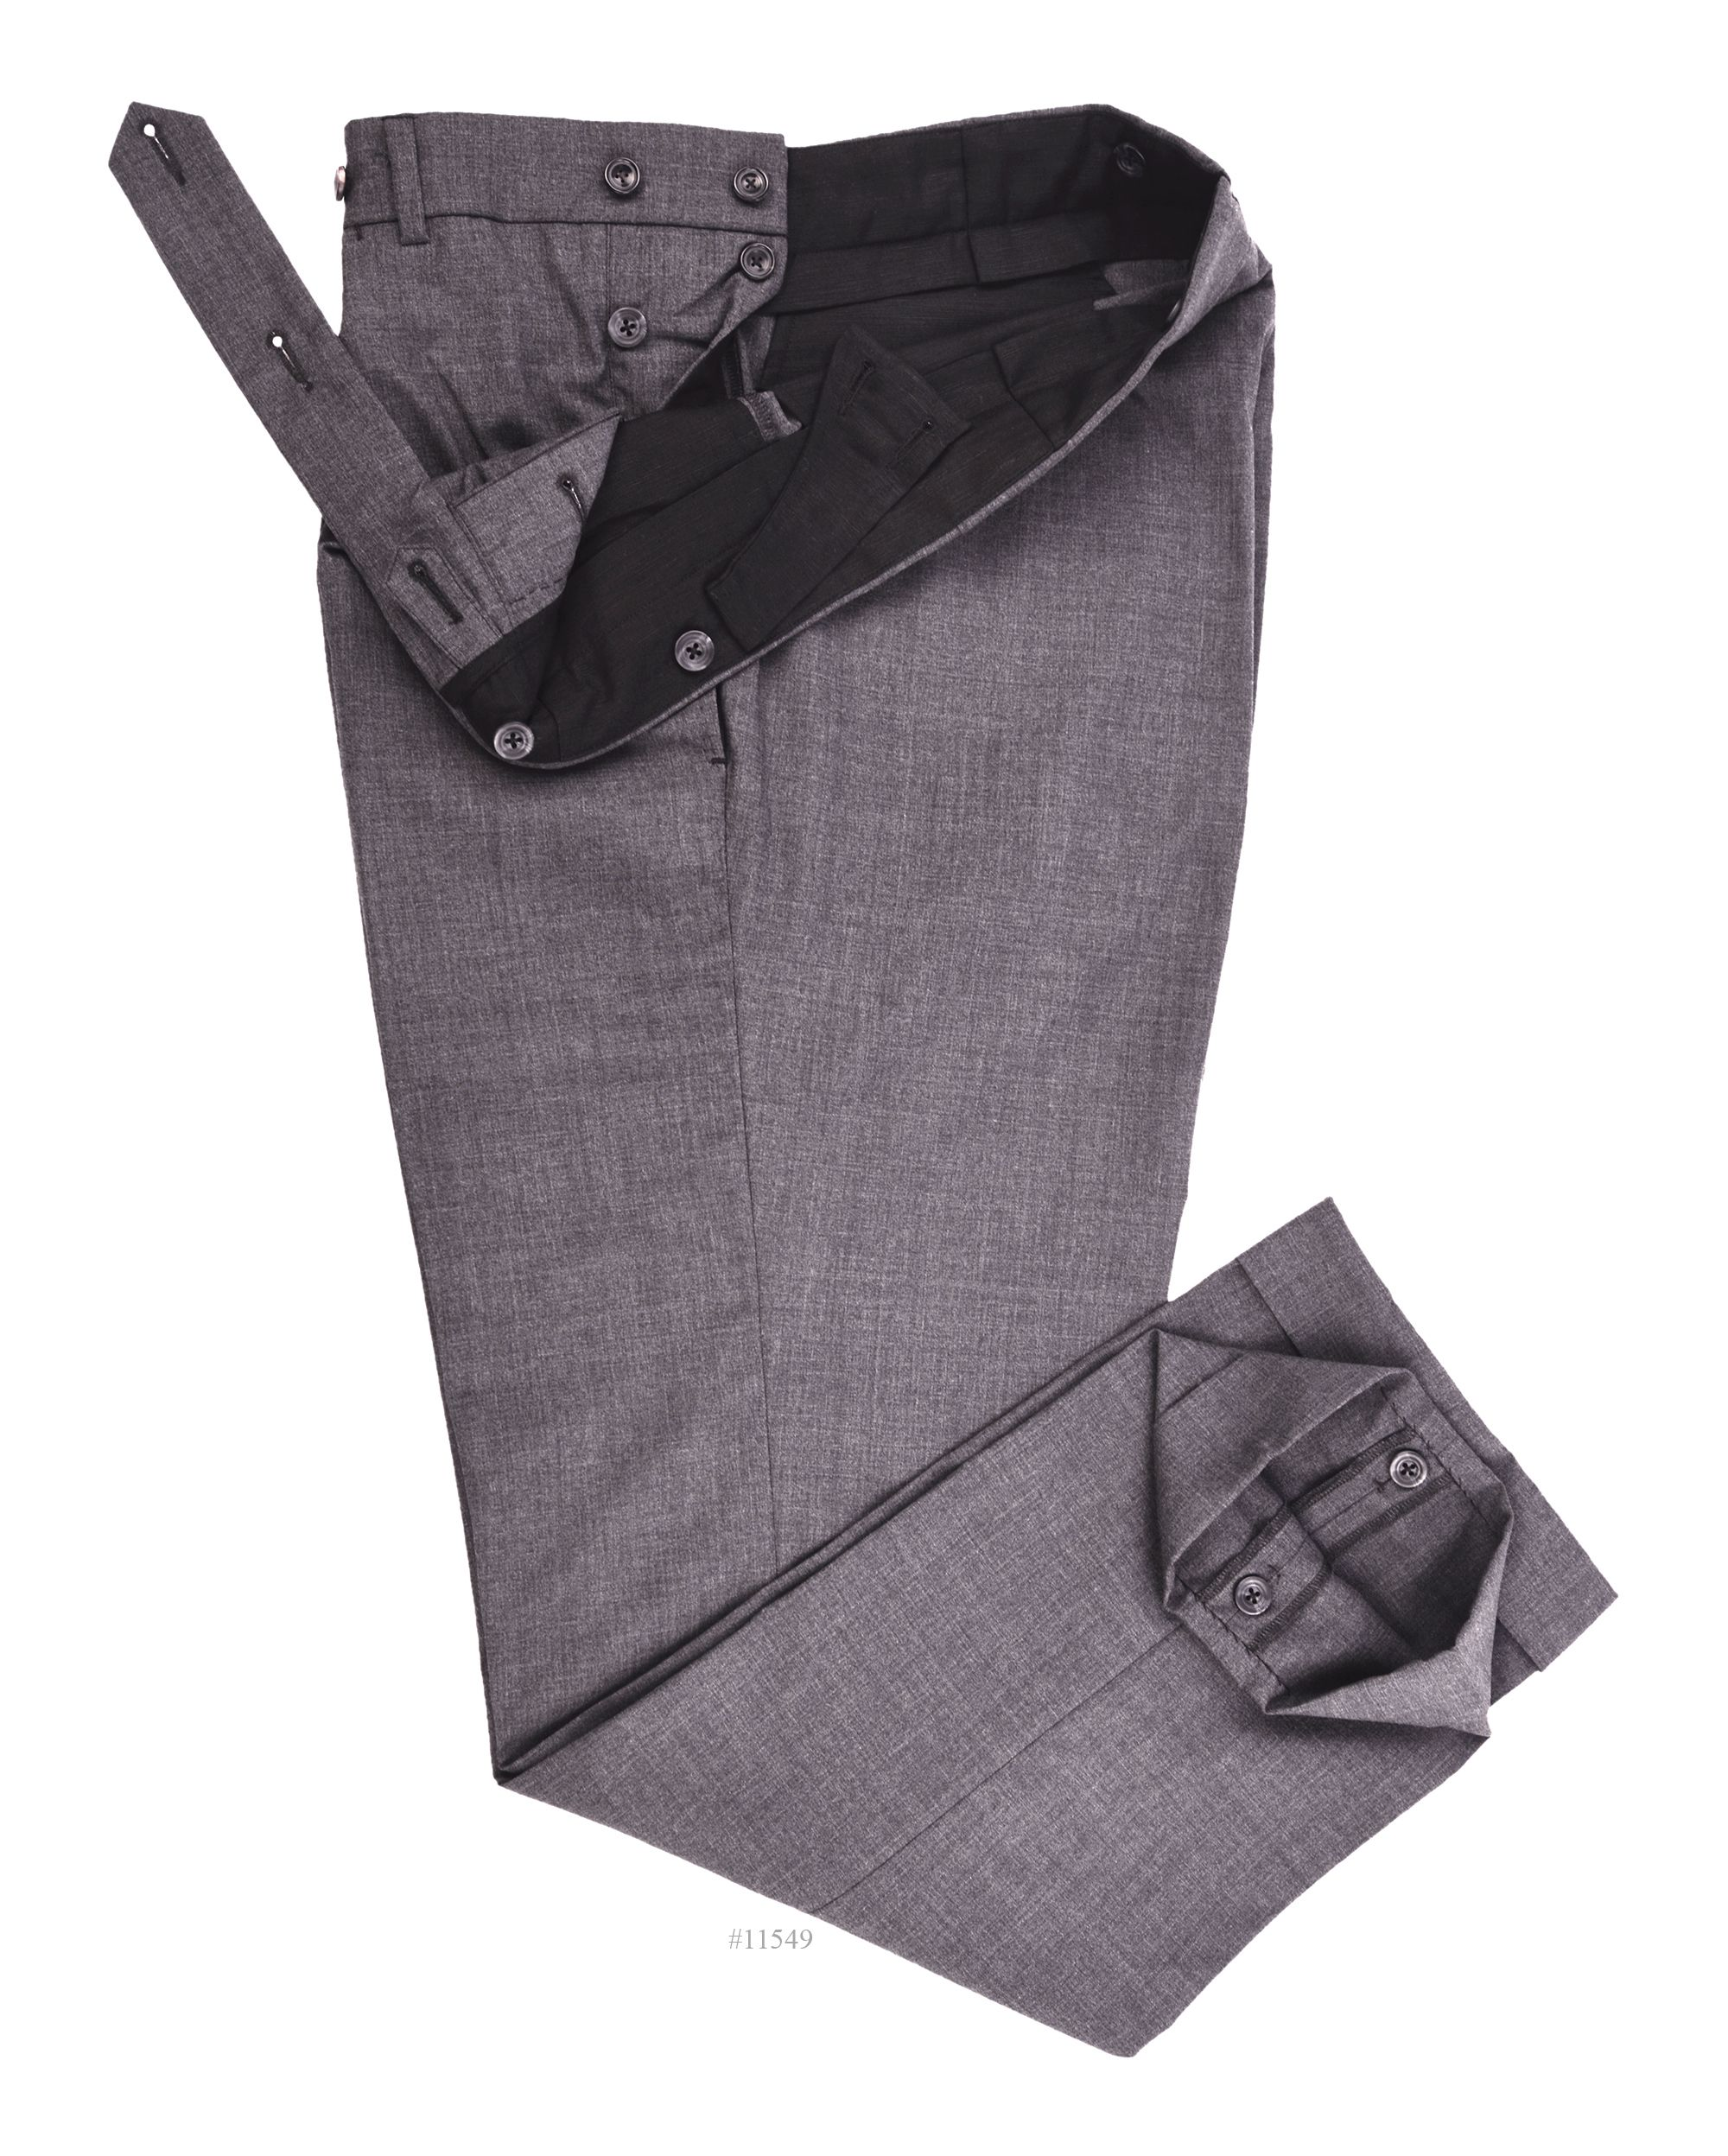 Luxire dress pants constructed in Vitale Barberis Canonico - 120s 2 Ply Dark Grey: http://luxire.com/products/vbc-vitale-barberis-canonico-120s-2-ply-dark-grey-vbc_840_601_5730  Consists of extra long extended closure with elastic adjusting waistband and button fly style.